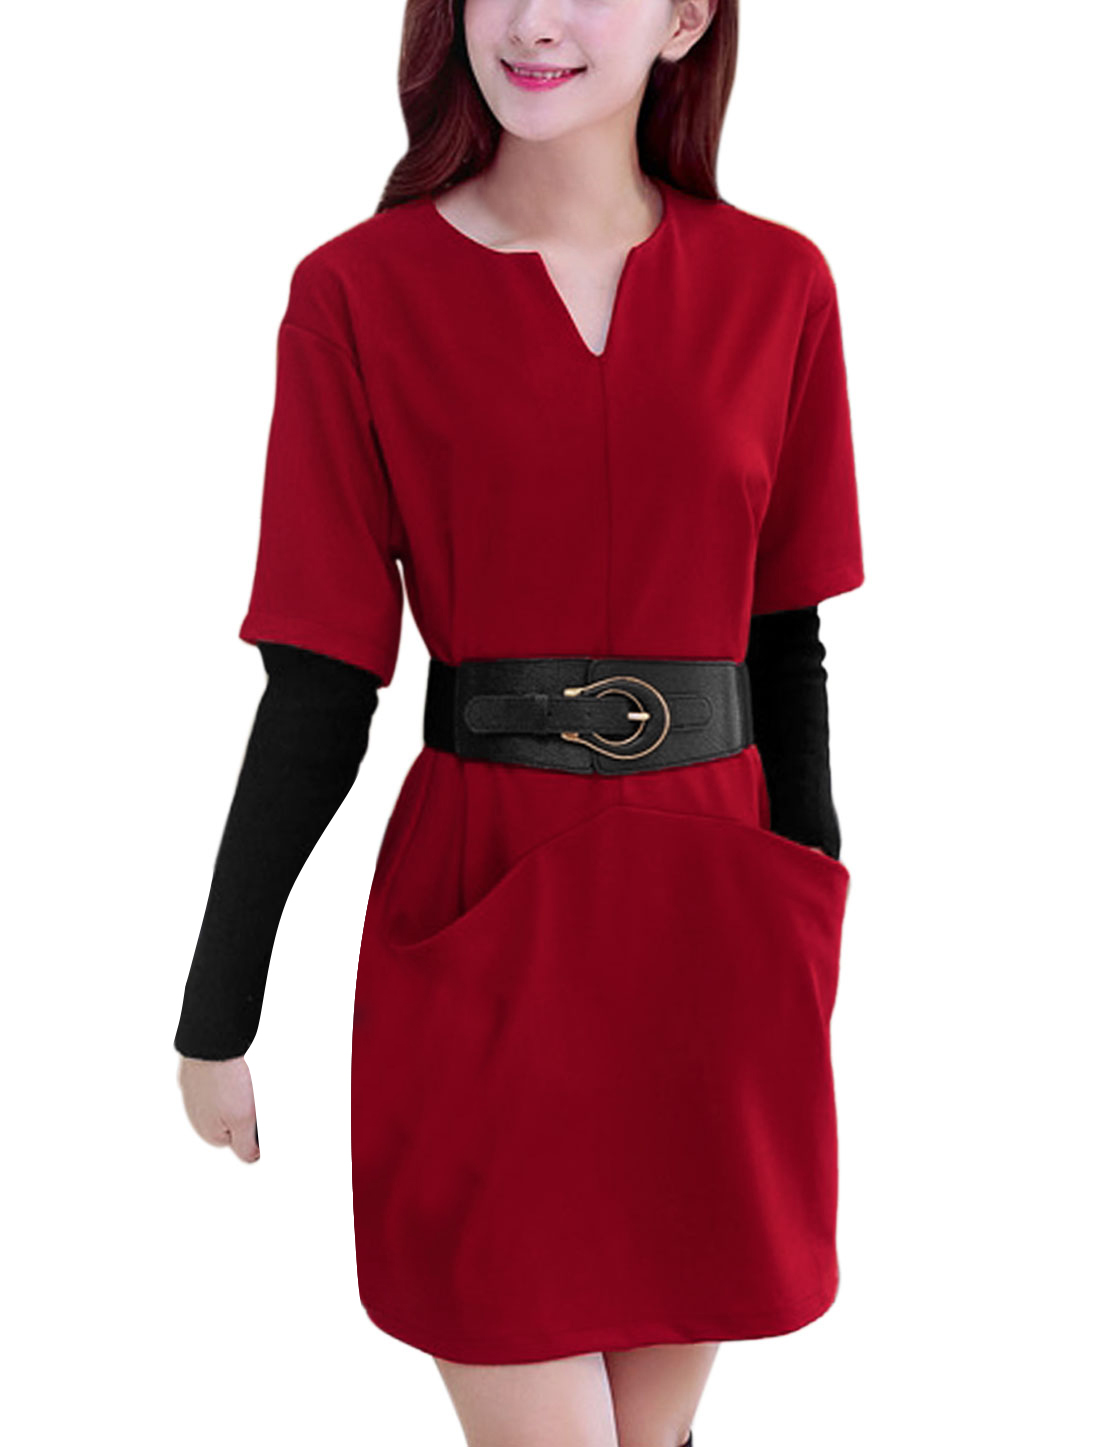 Lady V Neck Double Pockets Front Casual Straight Dress w Belt Red S